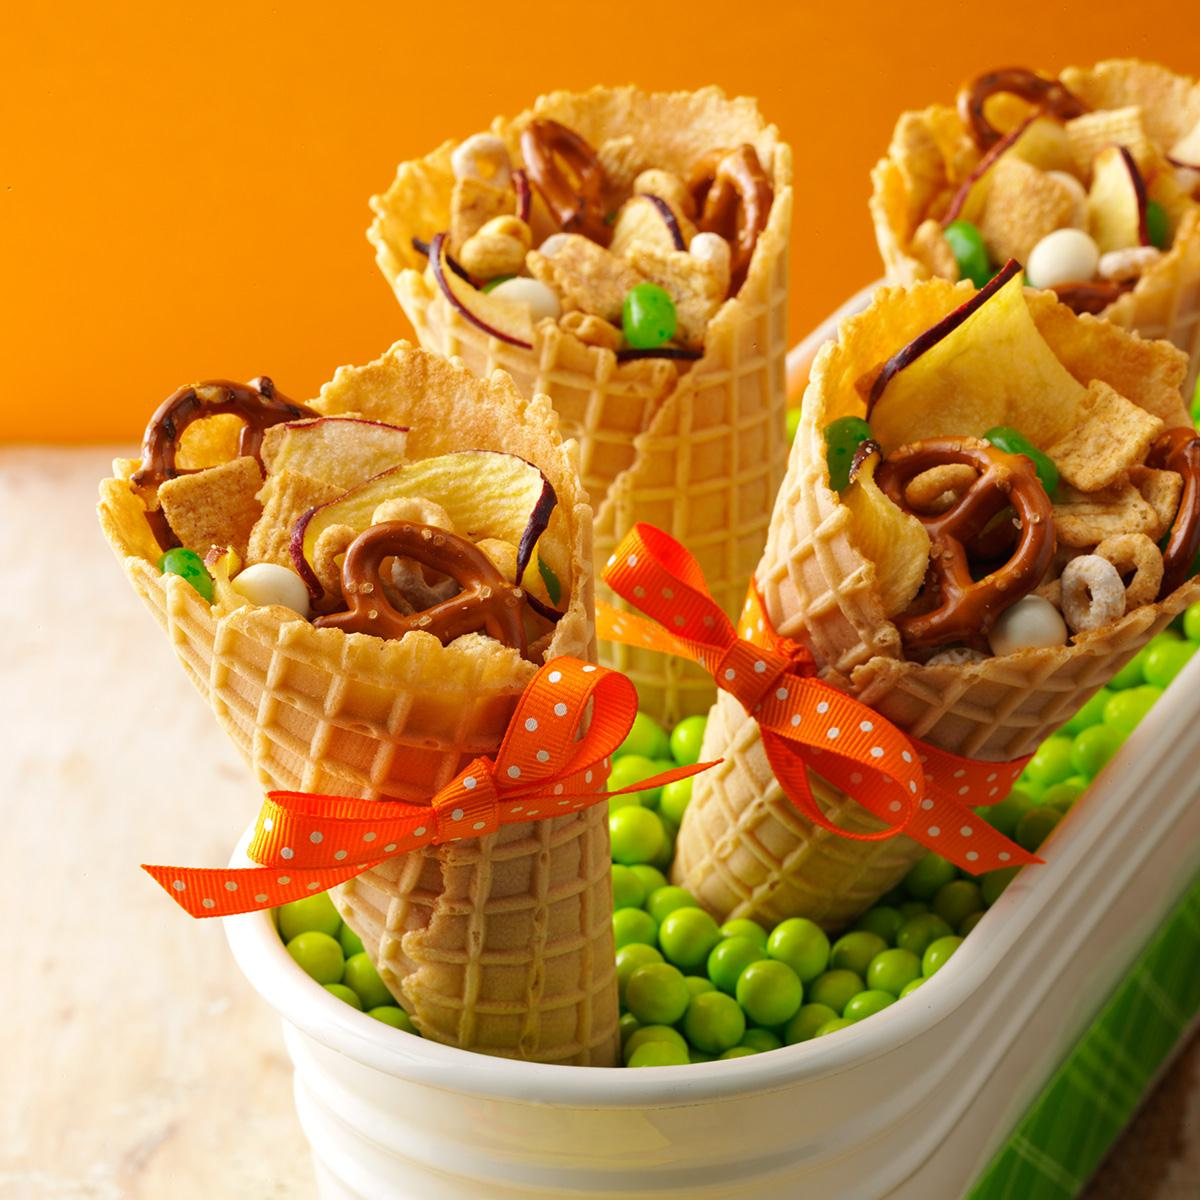 Apple snack mix recipe taste of home for Halloween cooking ideas for preschool